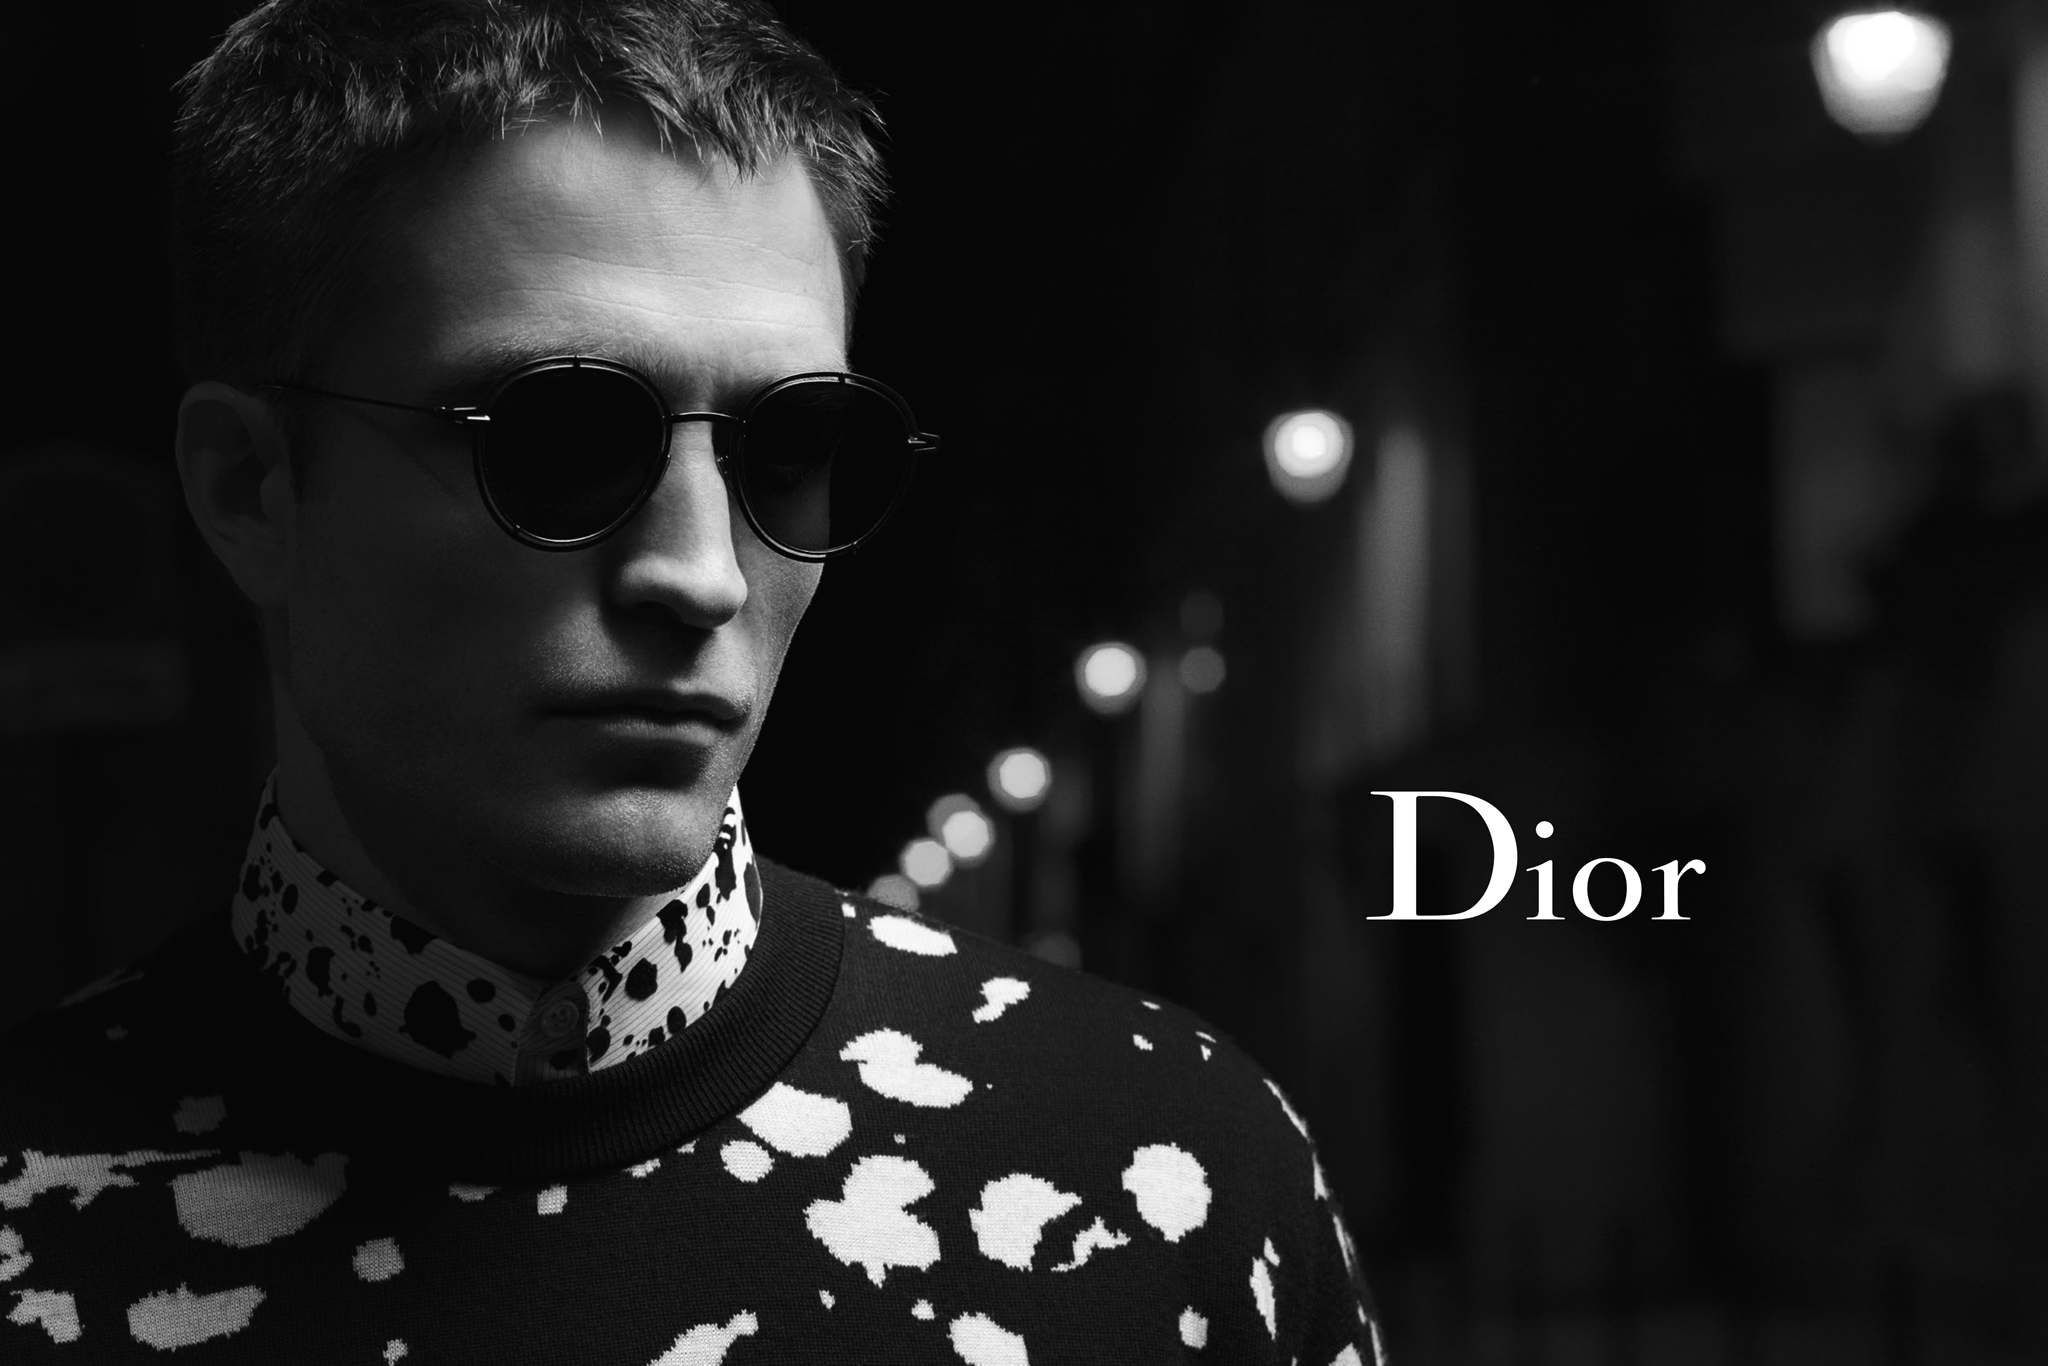 Robert Pattinson featured in Nocturnal Dior ad campaign.